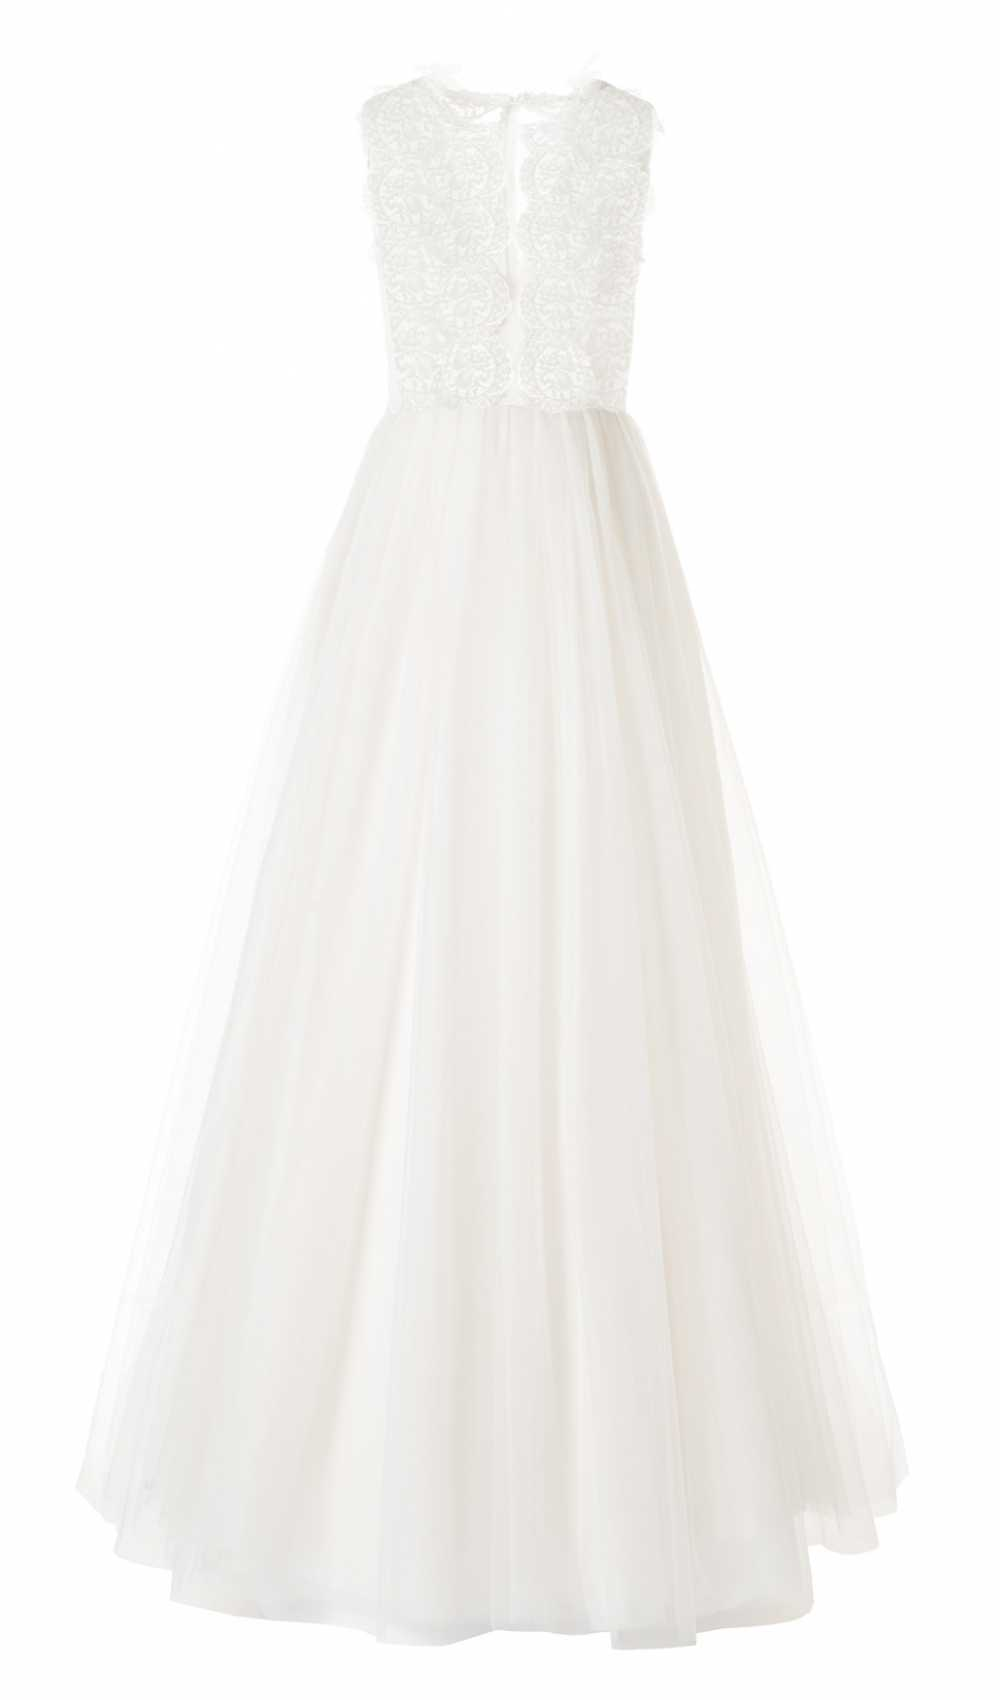 Wedding Dress Petite Fleur Dress by Kaviar Gauche